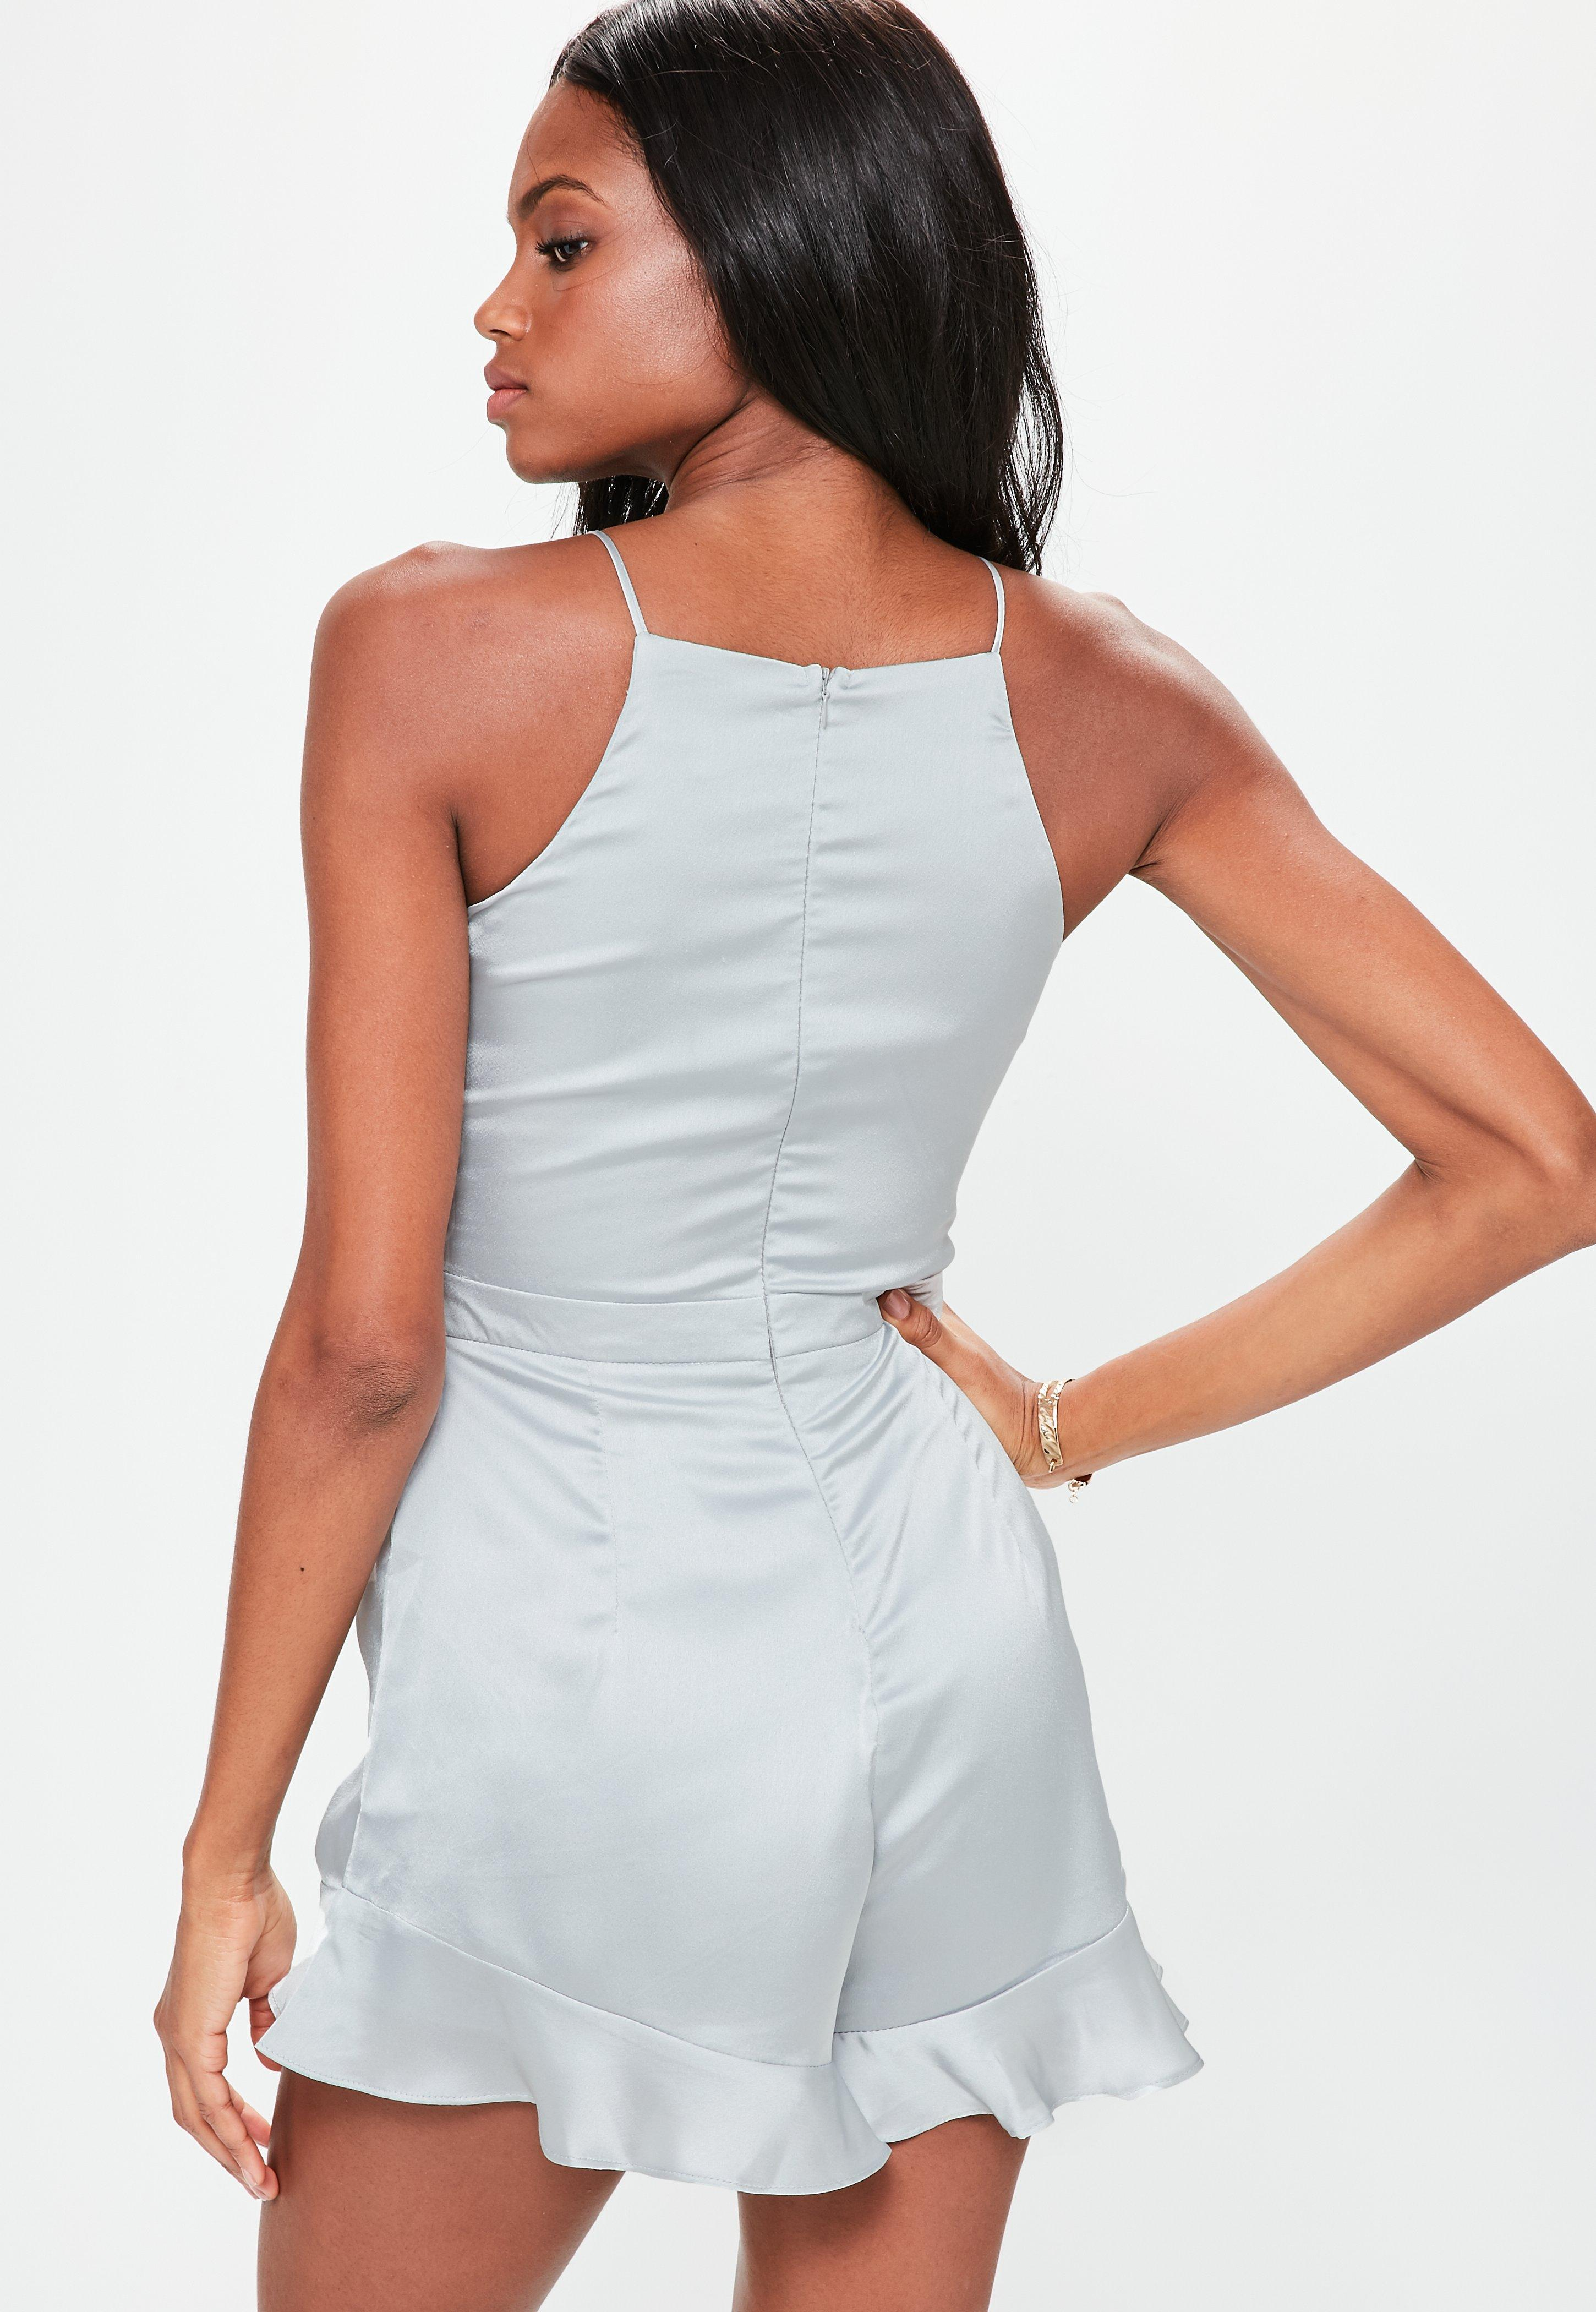 68fad90e4f Missguided Grey Satin Frill Short Playsuit in Gray - Lyst